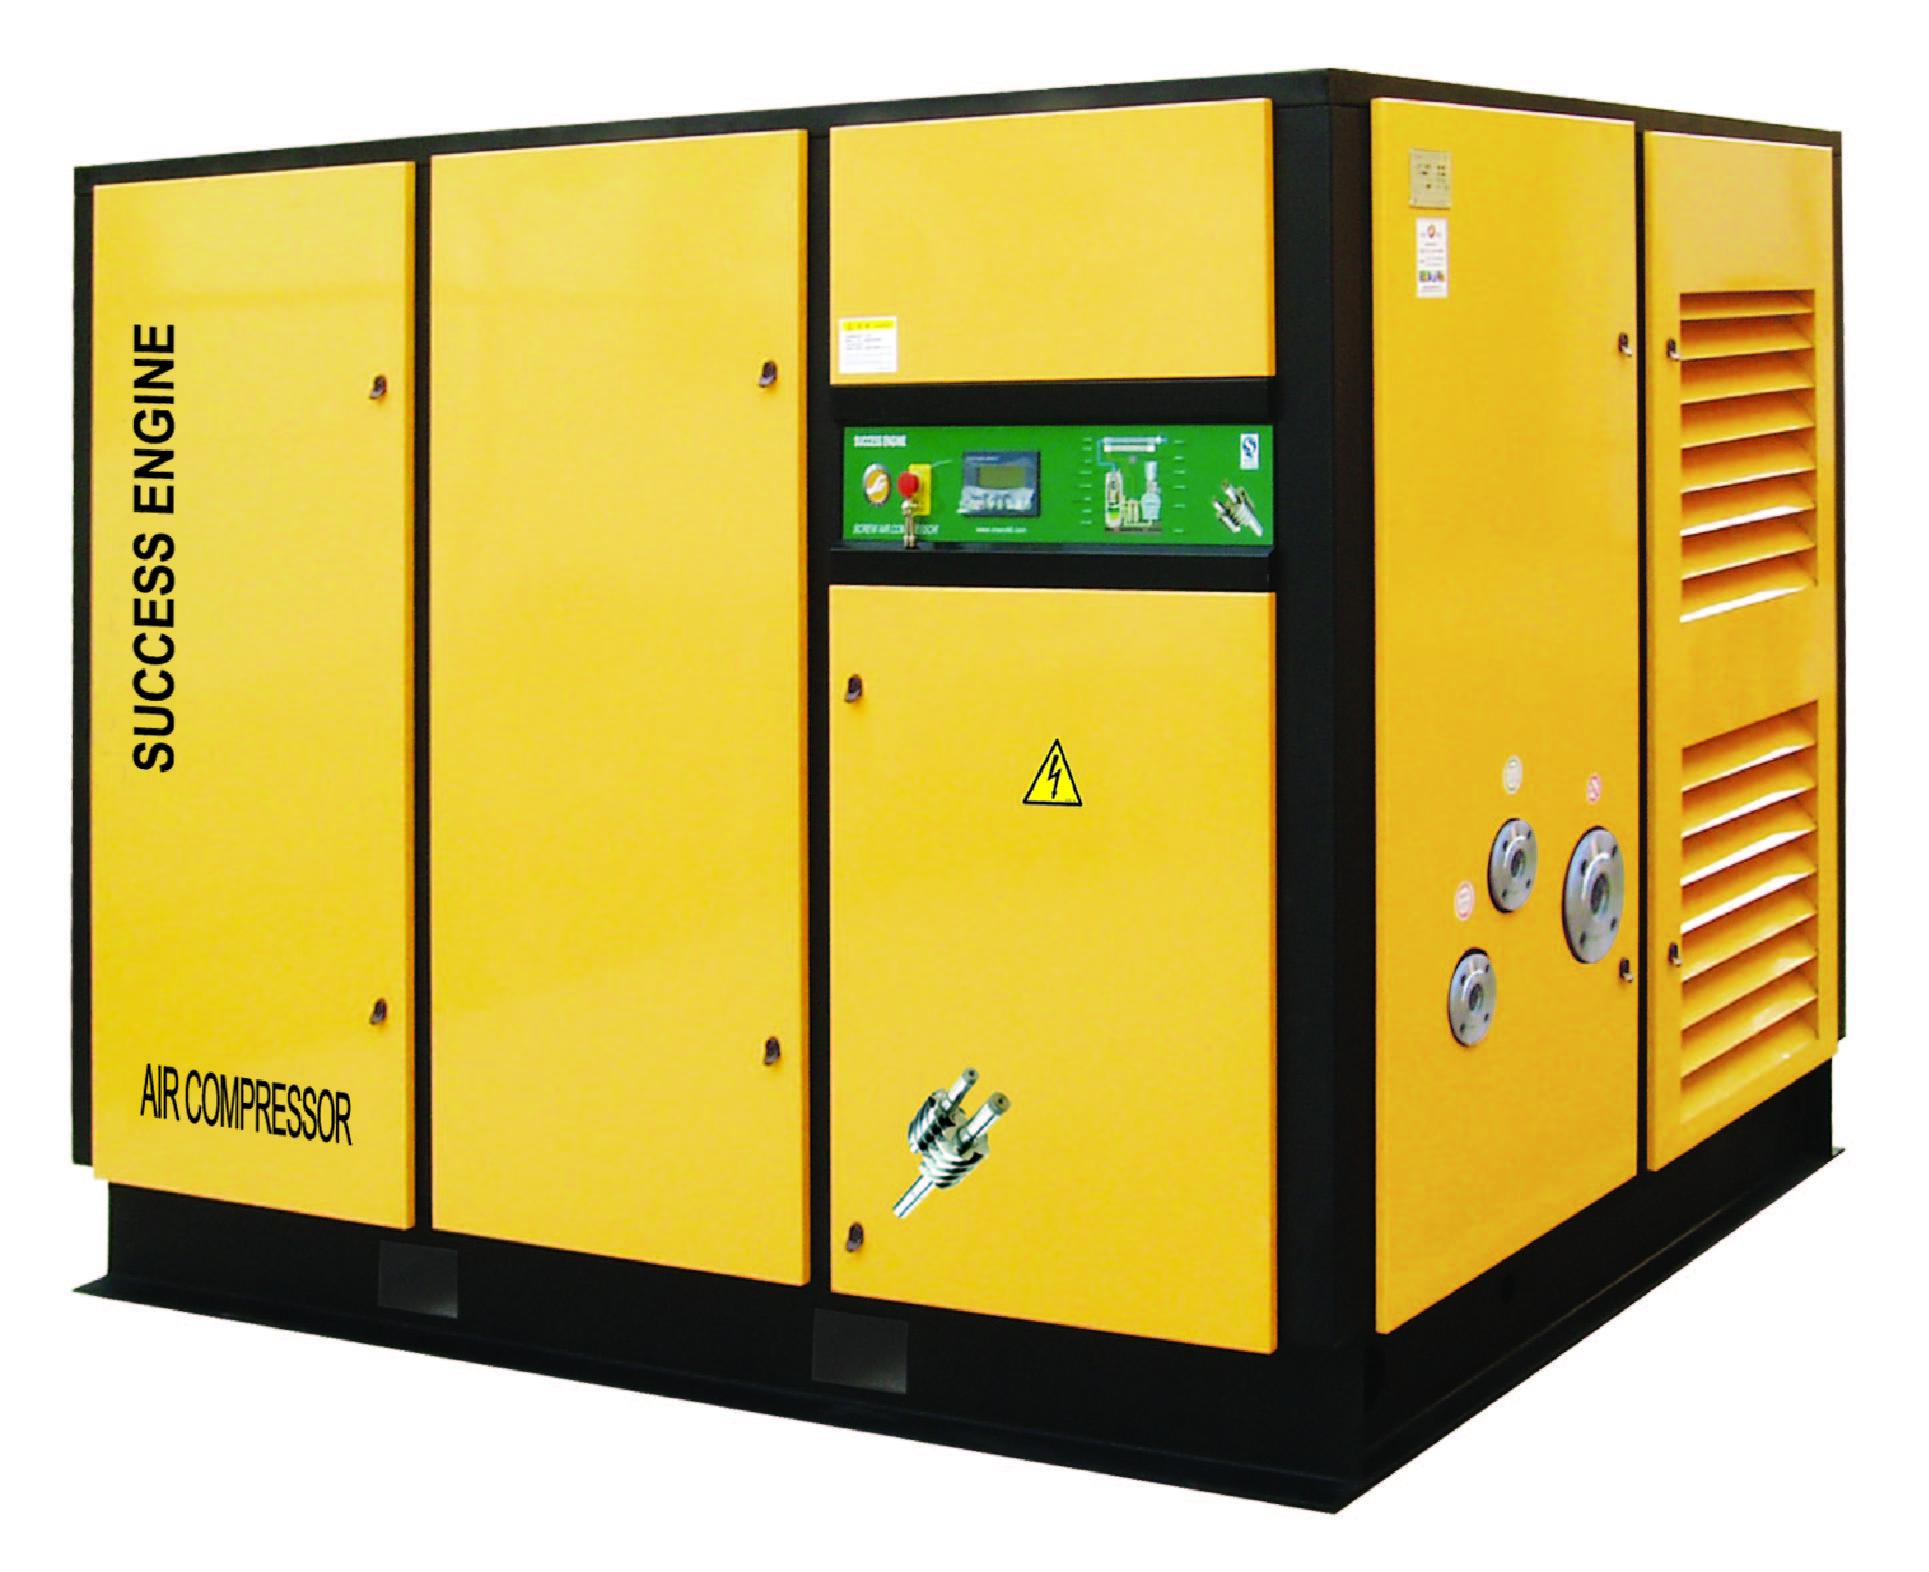 SUCCESS ENGINE Screw Air Compressor 110-220kw Direct Drive Series